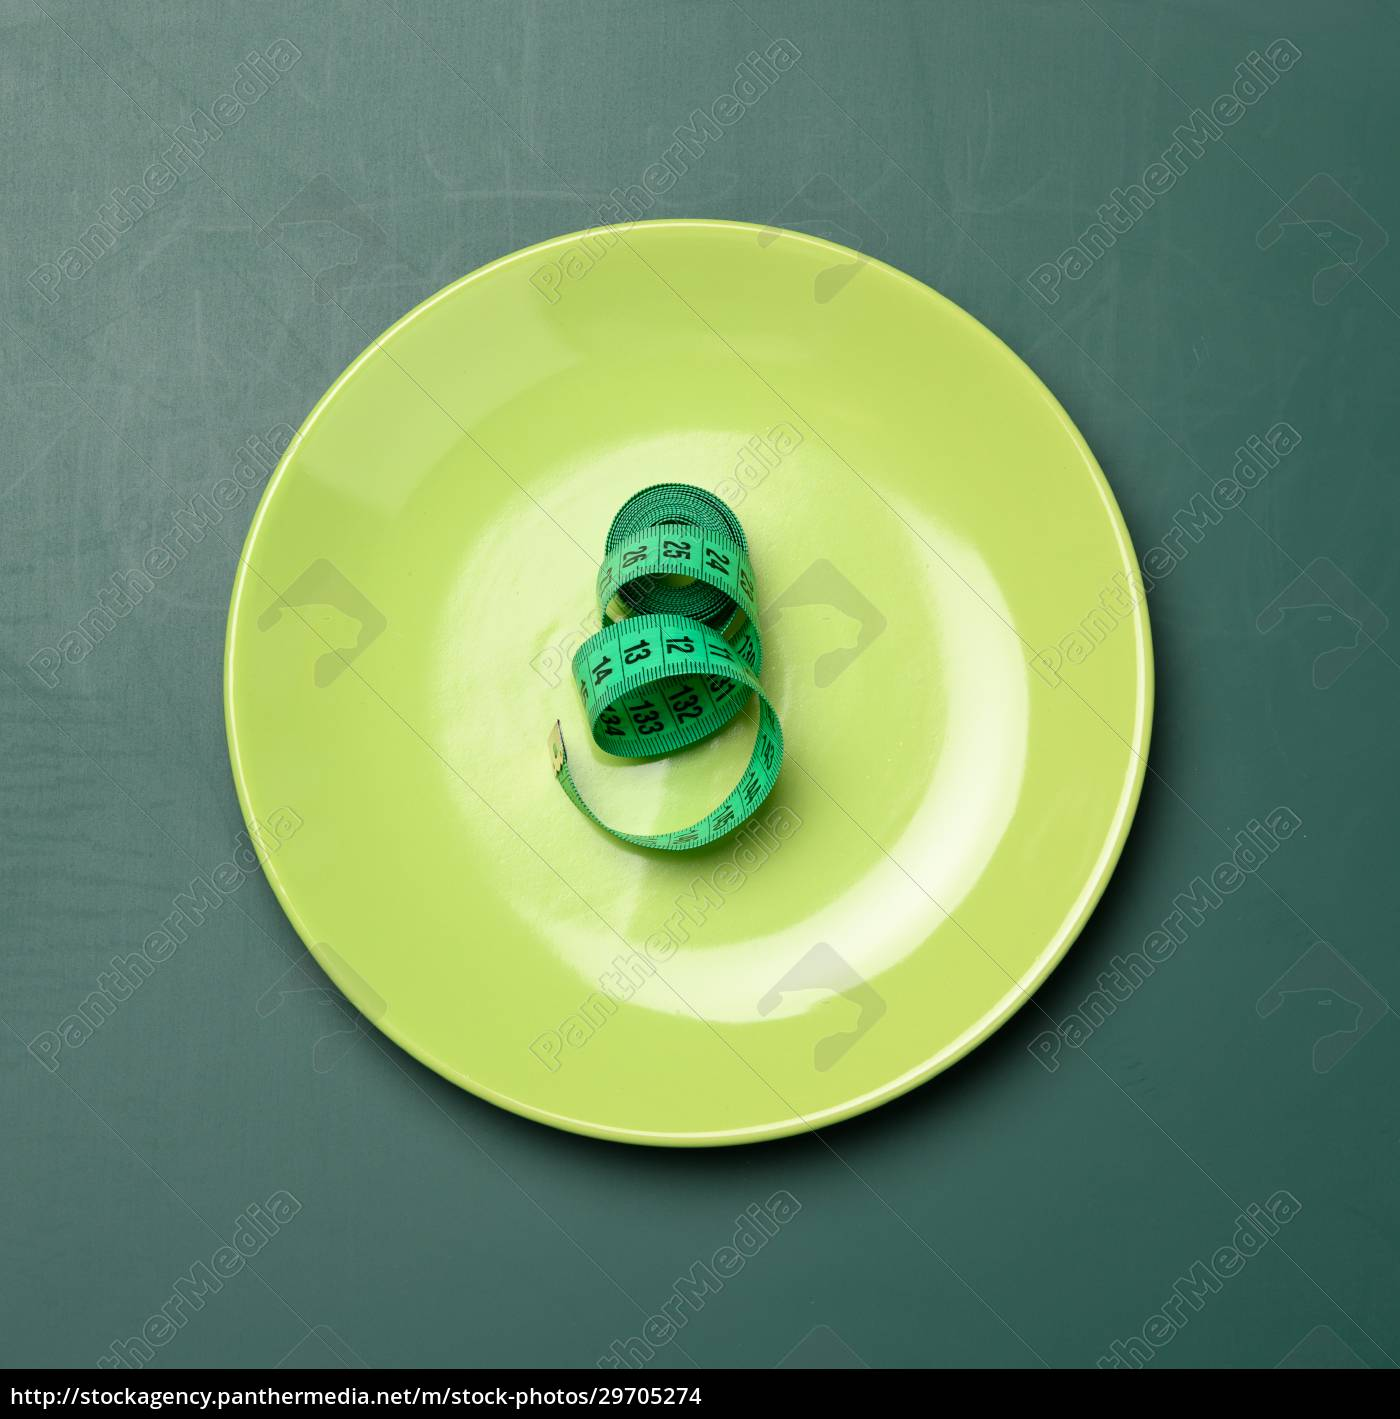 green, round, plate, and, green, measuring - 29705274